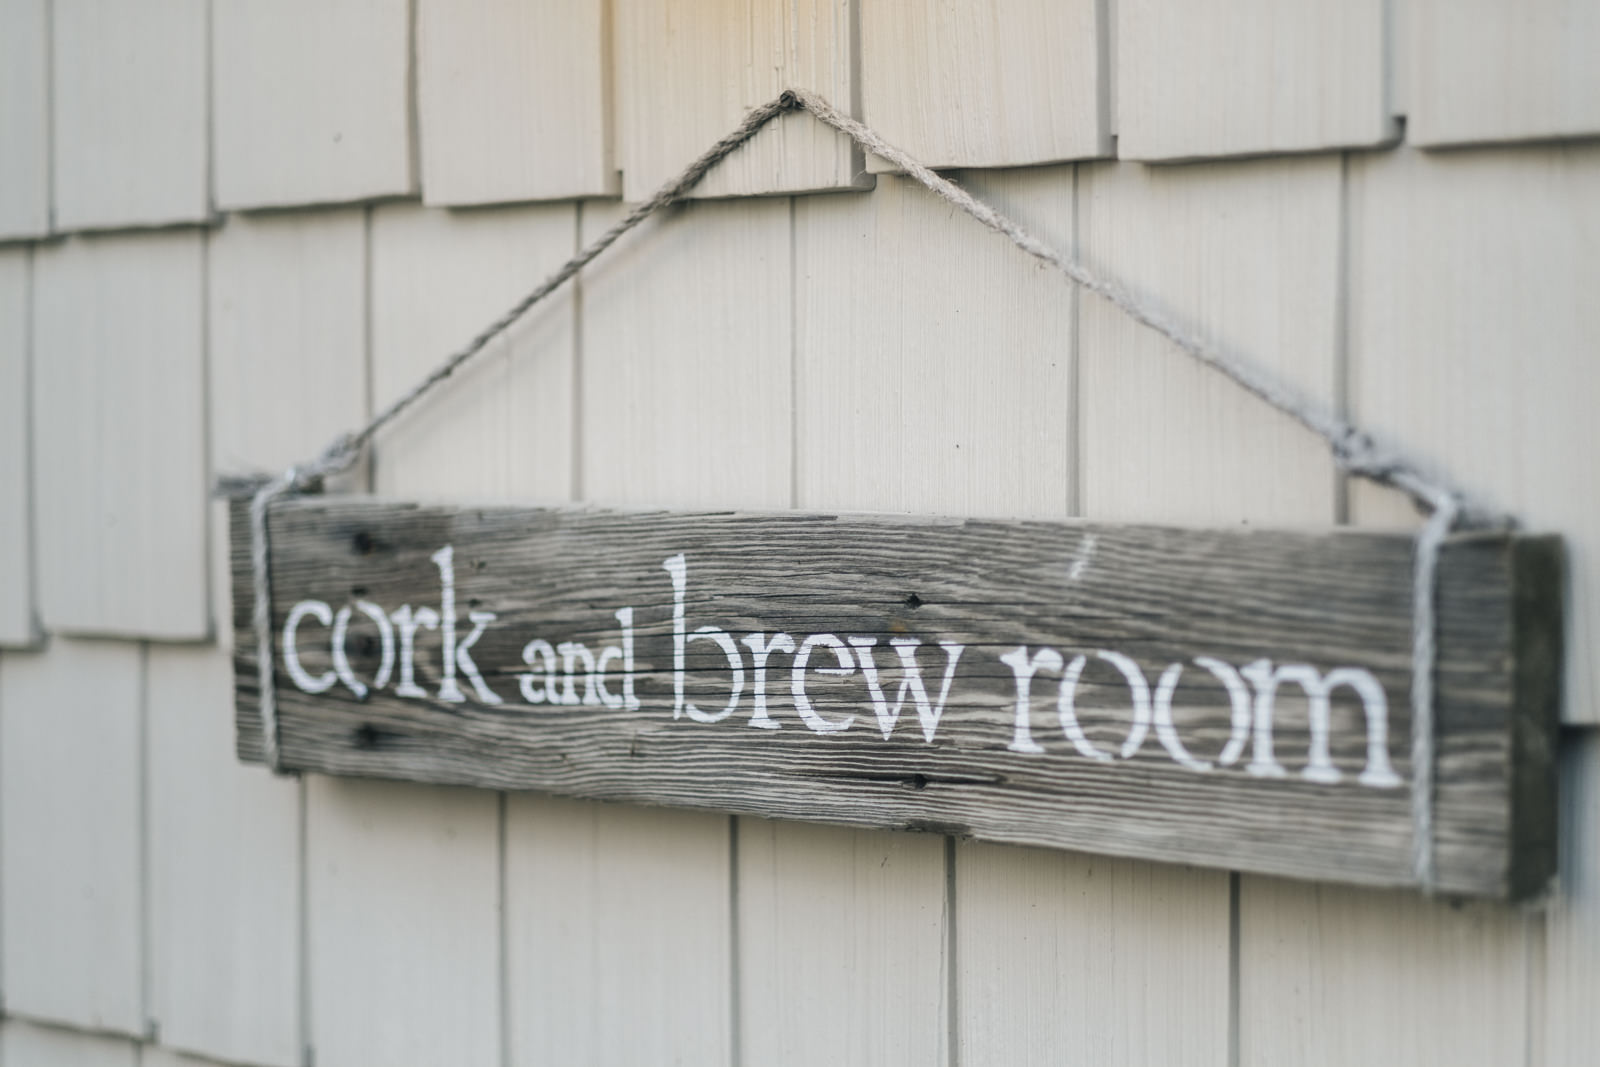 Cork and Brew room nautical wedding sign